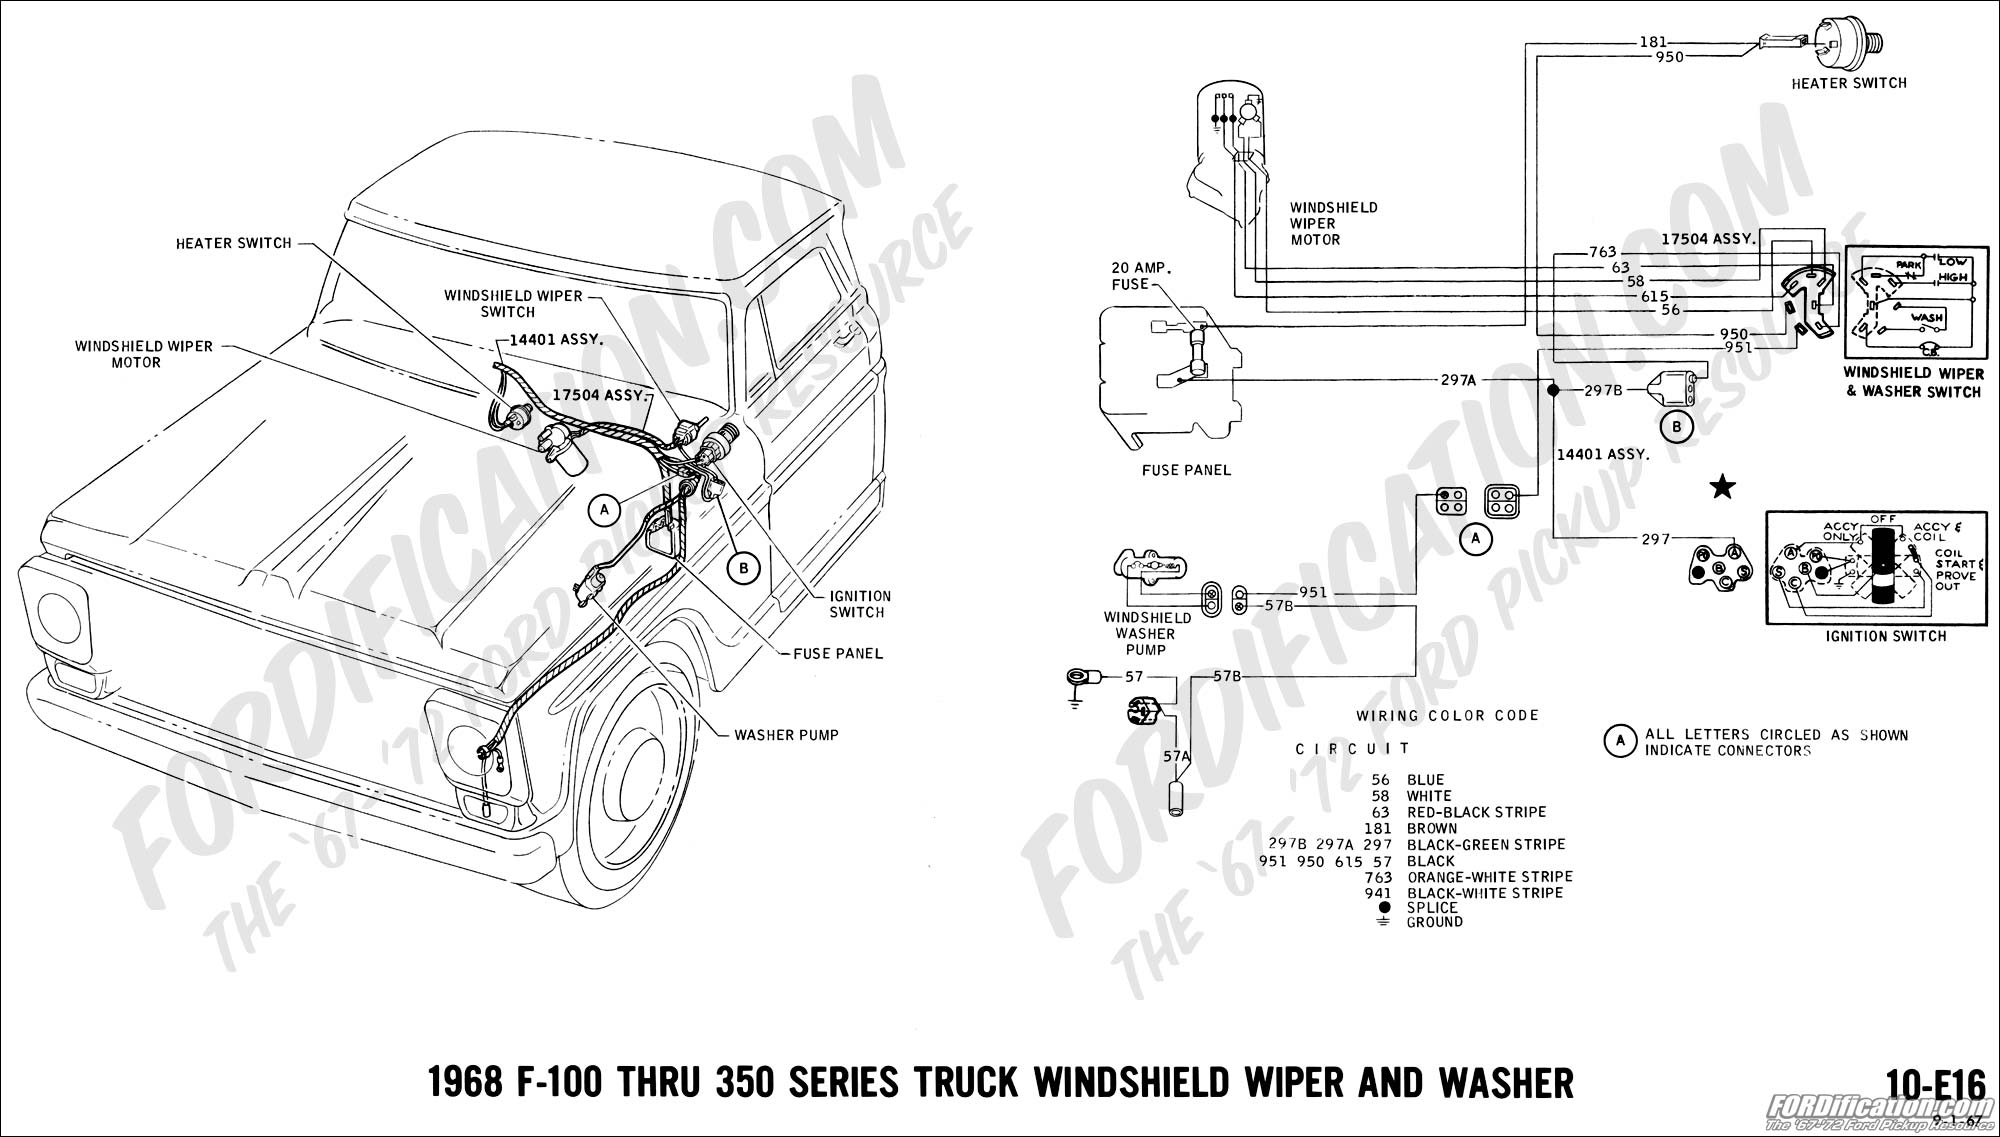 1994 Honda Accord Wiring Diagram 2002 Vw Beetle Wiper Relay Location For Volkswagen Rh 57 Skriptoase De